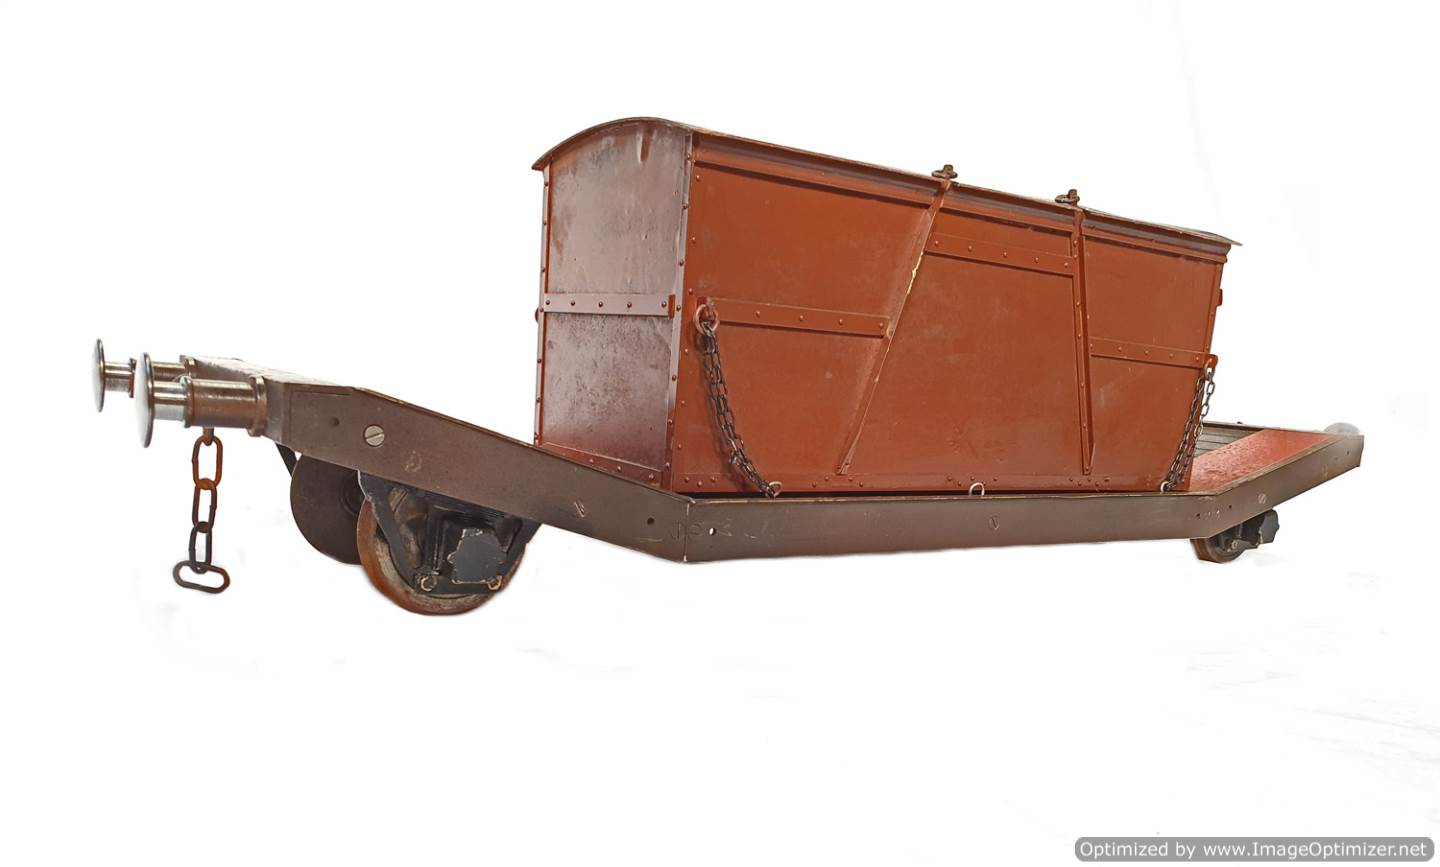 test 5 inch Well Wagon Van (4)